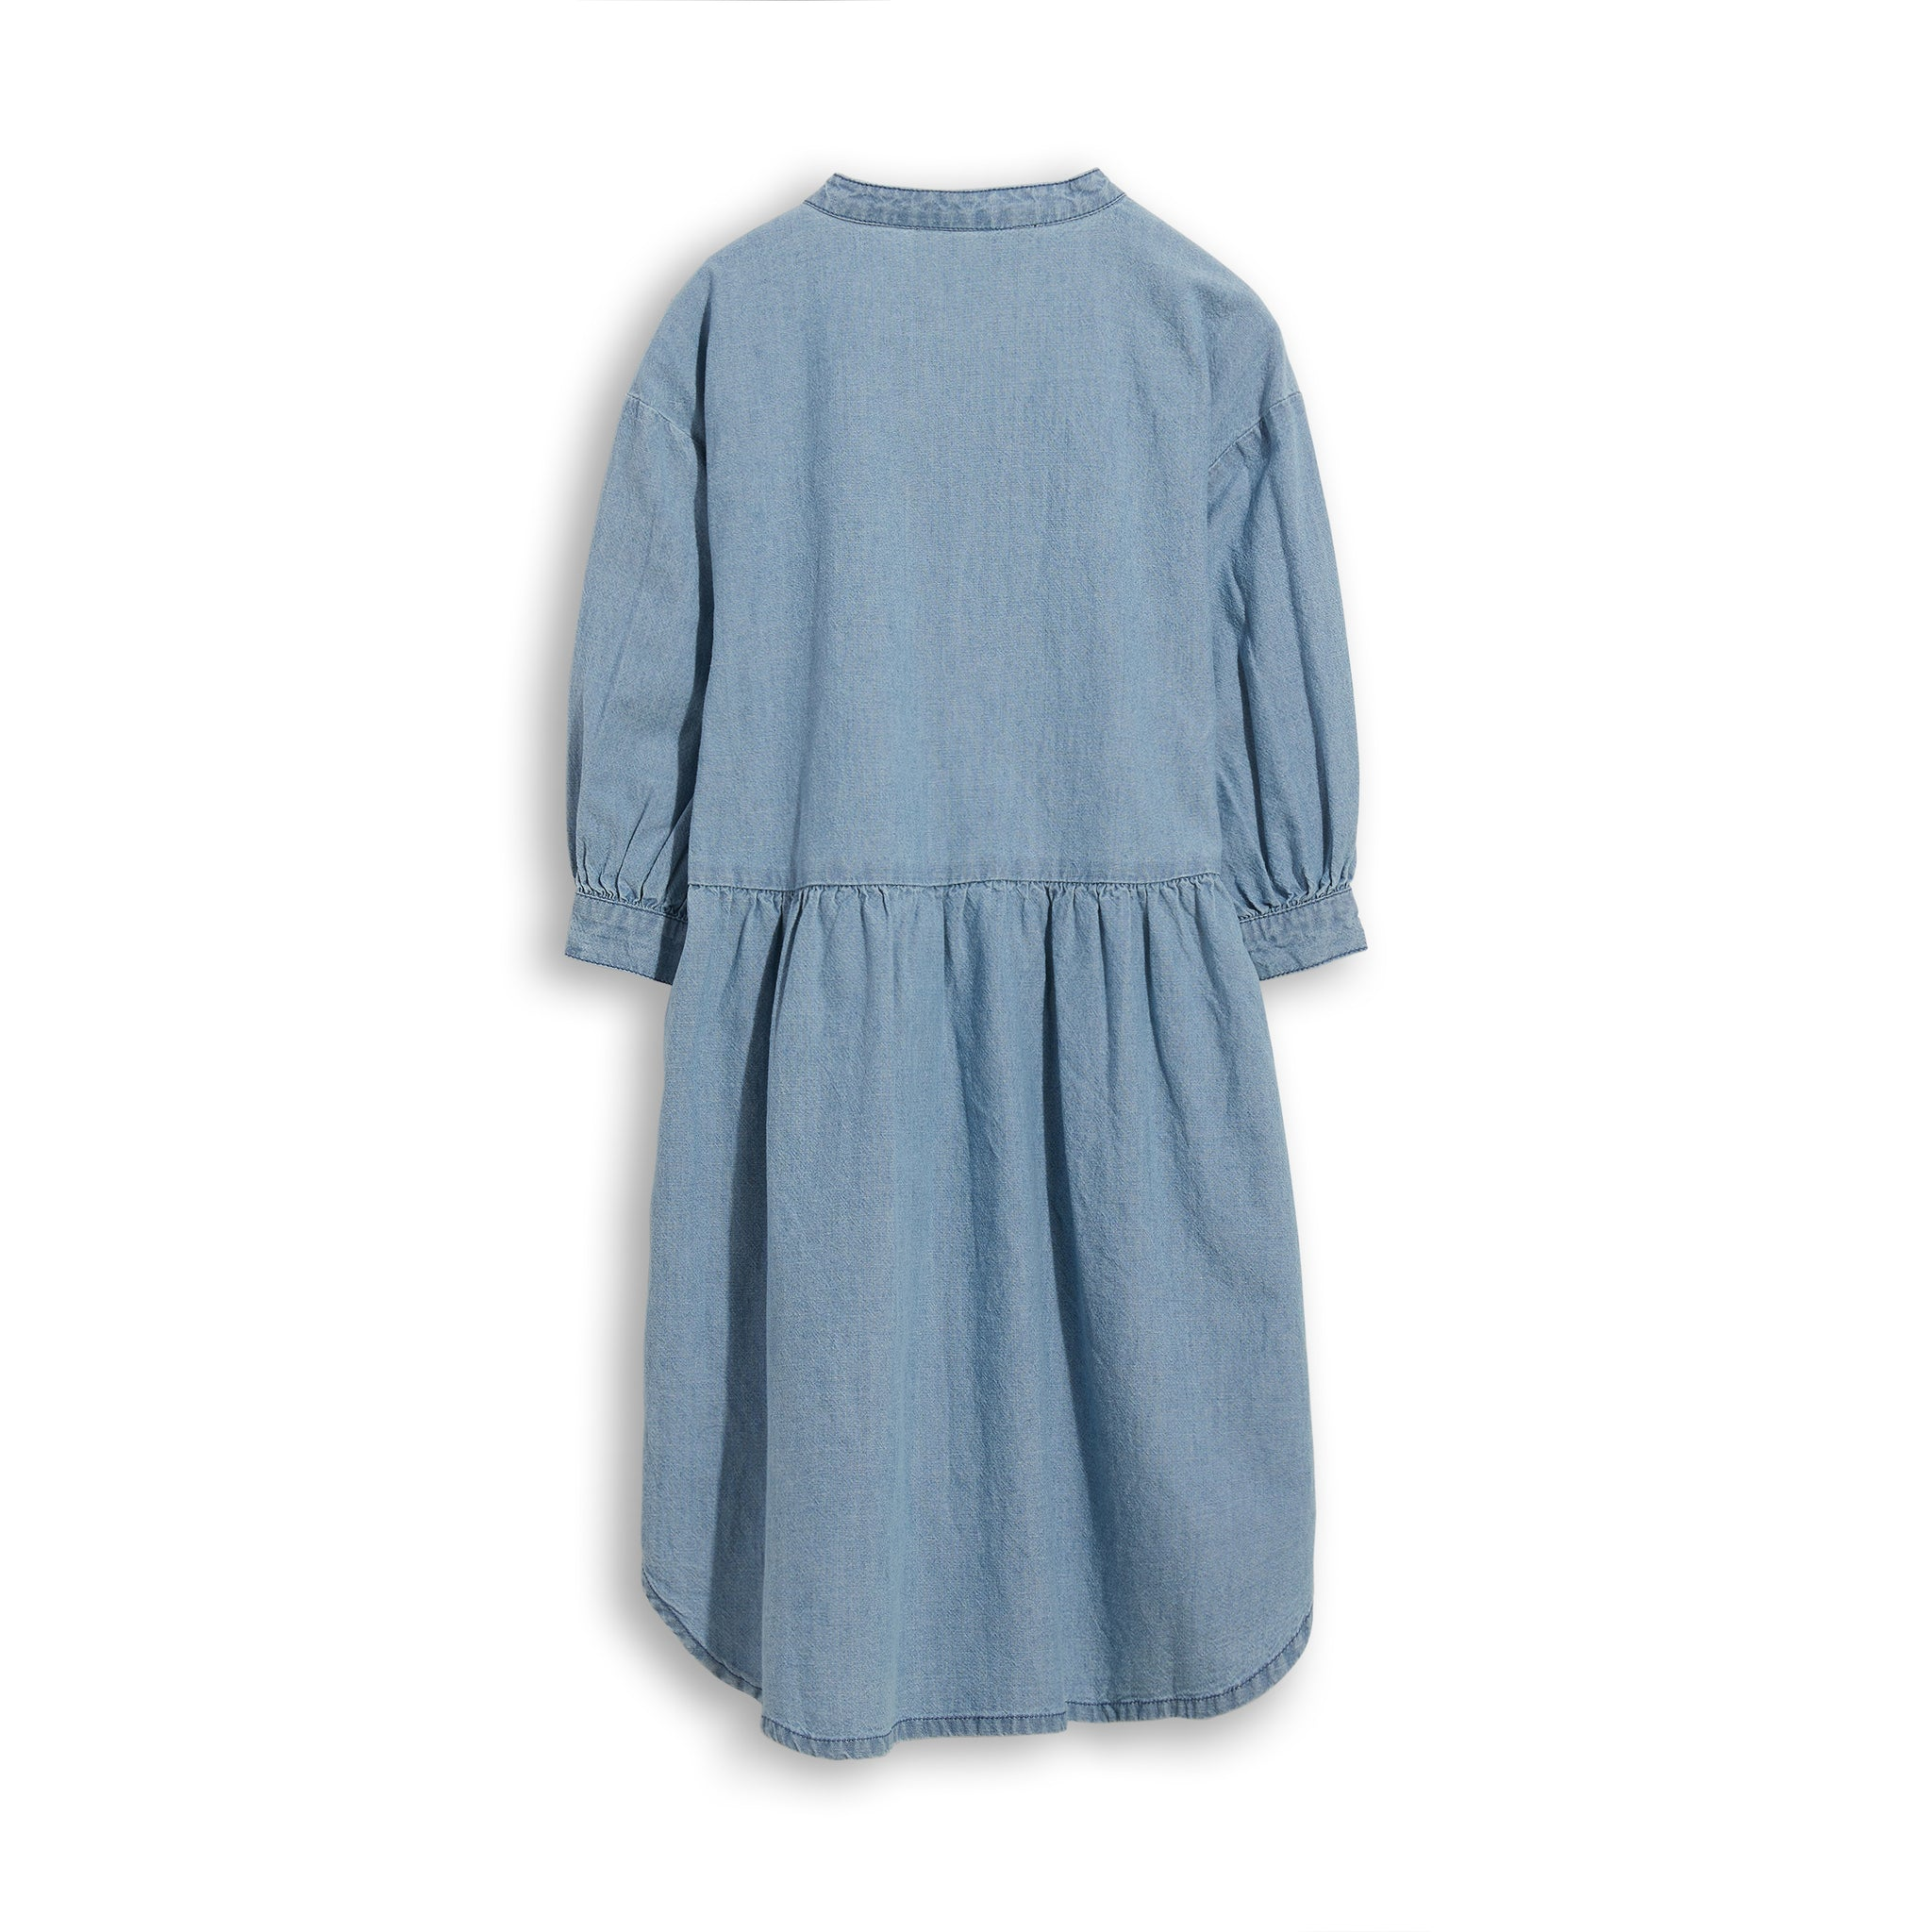 SWING Blue Denim - Short Sleevess Shirt Dress 2